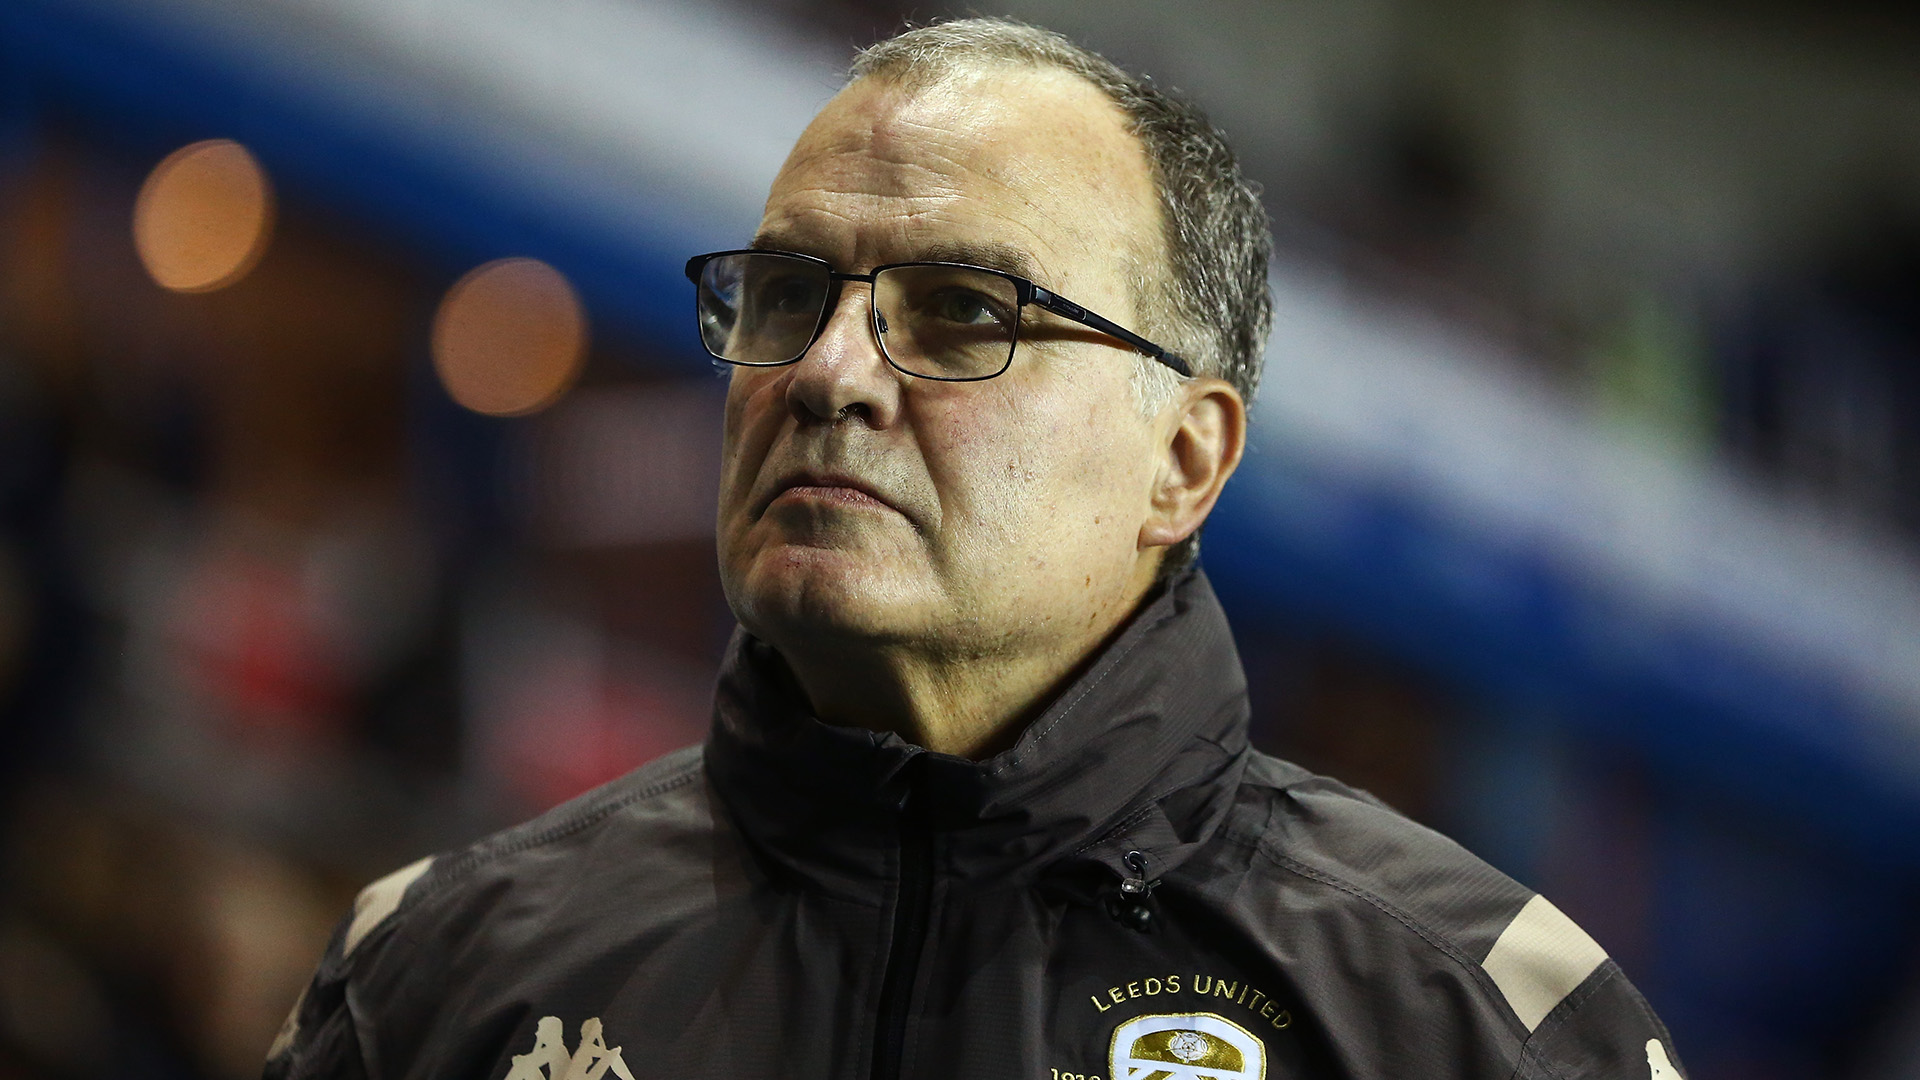 Leeds United manager Marcelo Bielsa has signed a new one-year deal for the 2020/2021 season. His commitment has come just one day before the newly-promoted team begin the 2020/2021 English Premier League (EPL) campaign away to champions Liverpool. The former Argentina and Chile national coach joined the club in August 2018. After 100 games in […]